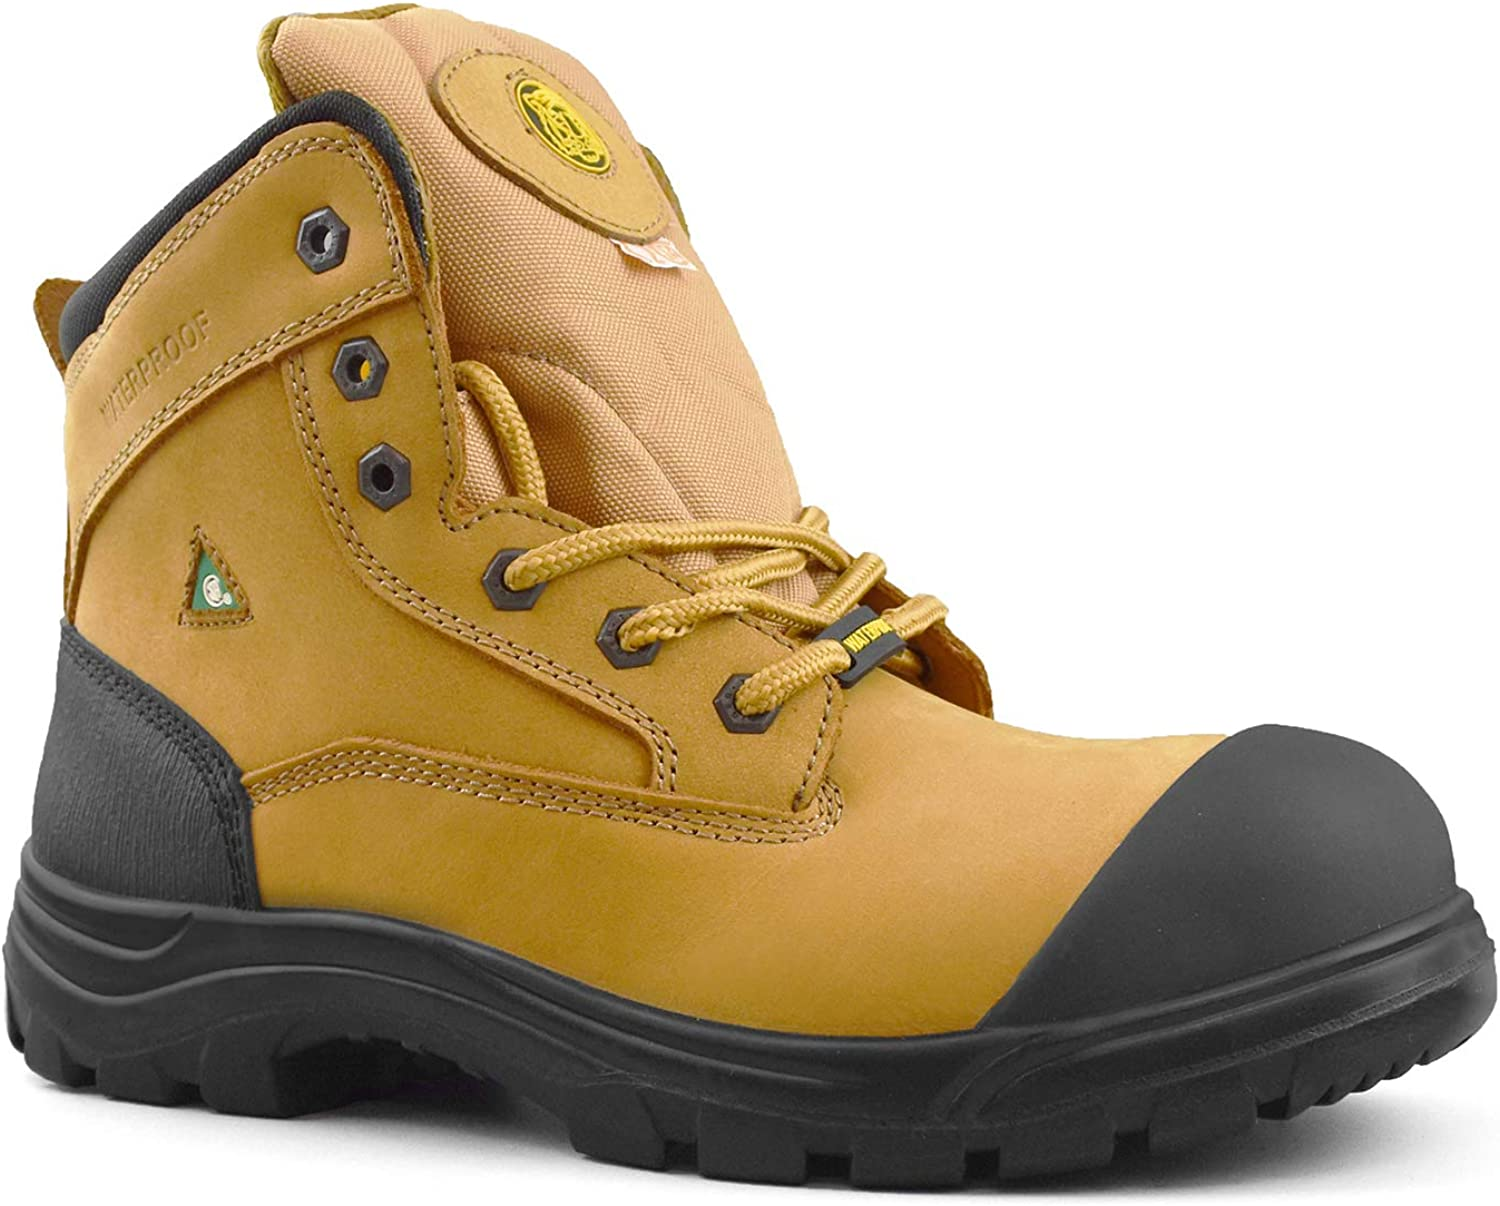 Tiger Mens CSA Steel Toe Waterproof 6 Leather Safety Boots 7666